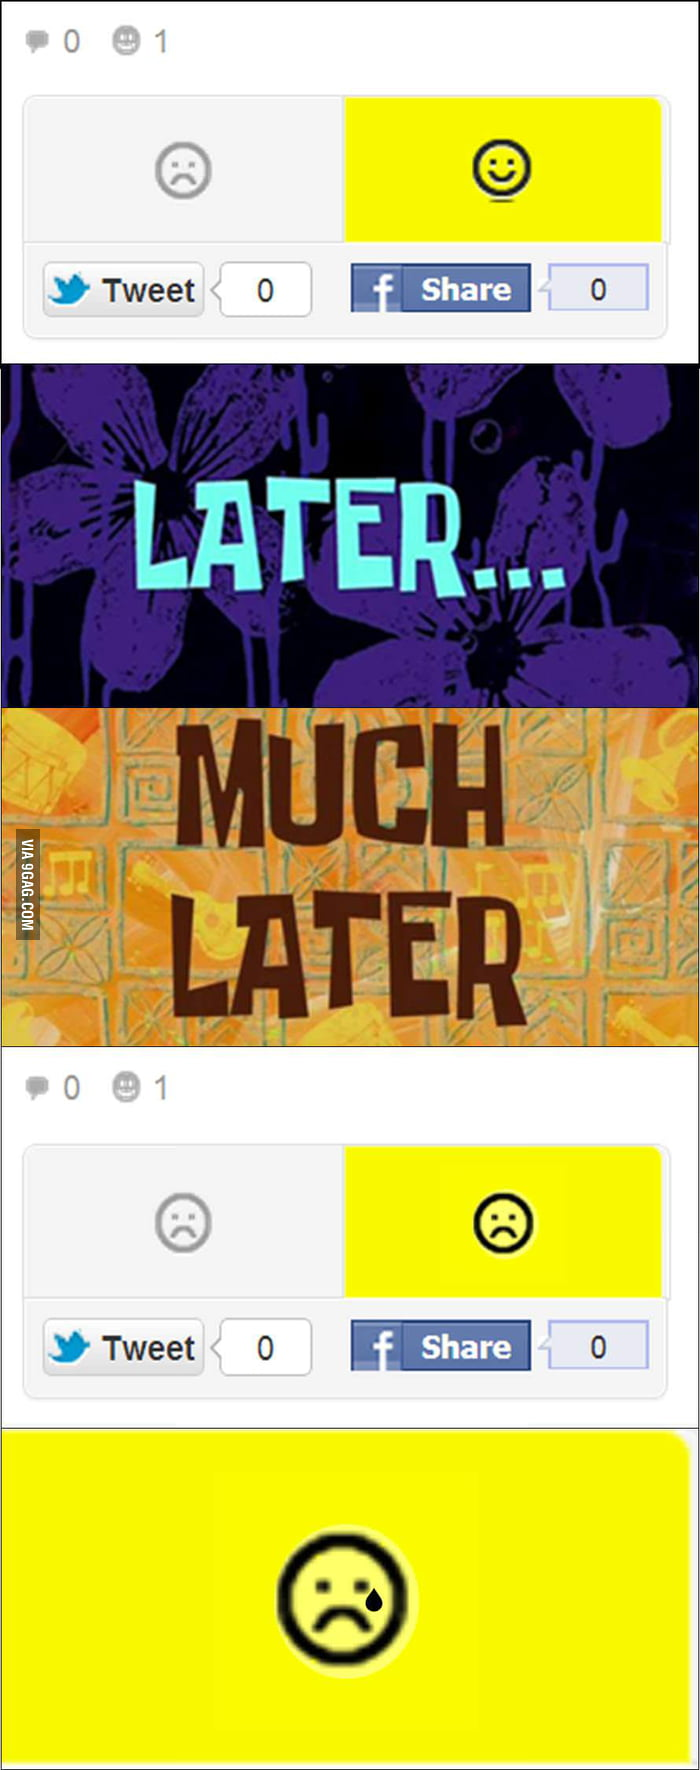 9gag is Ruthless Sometimes...